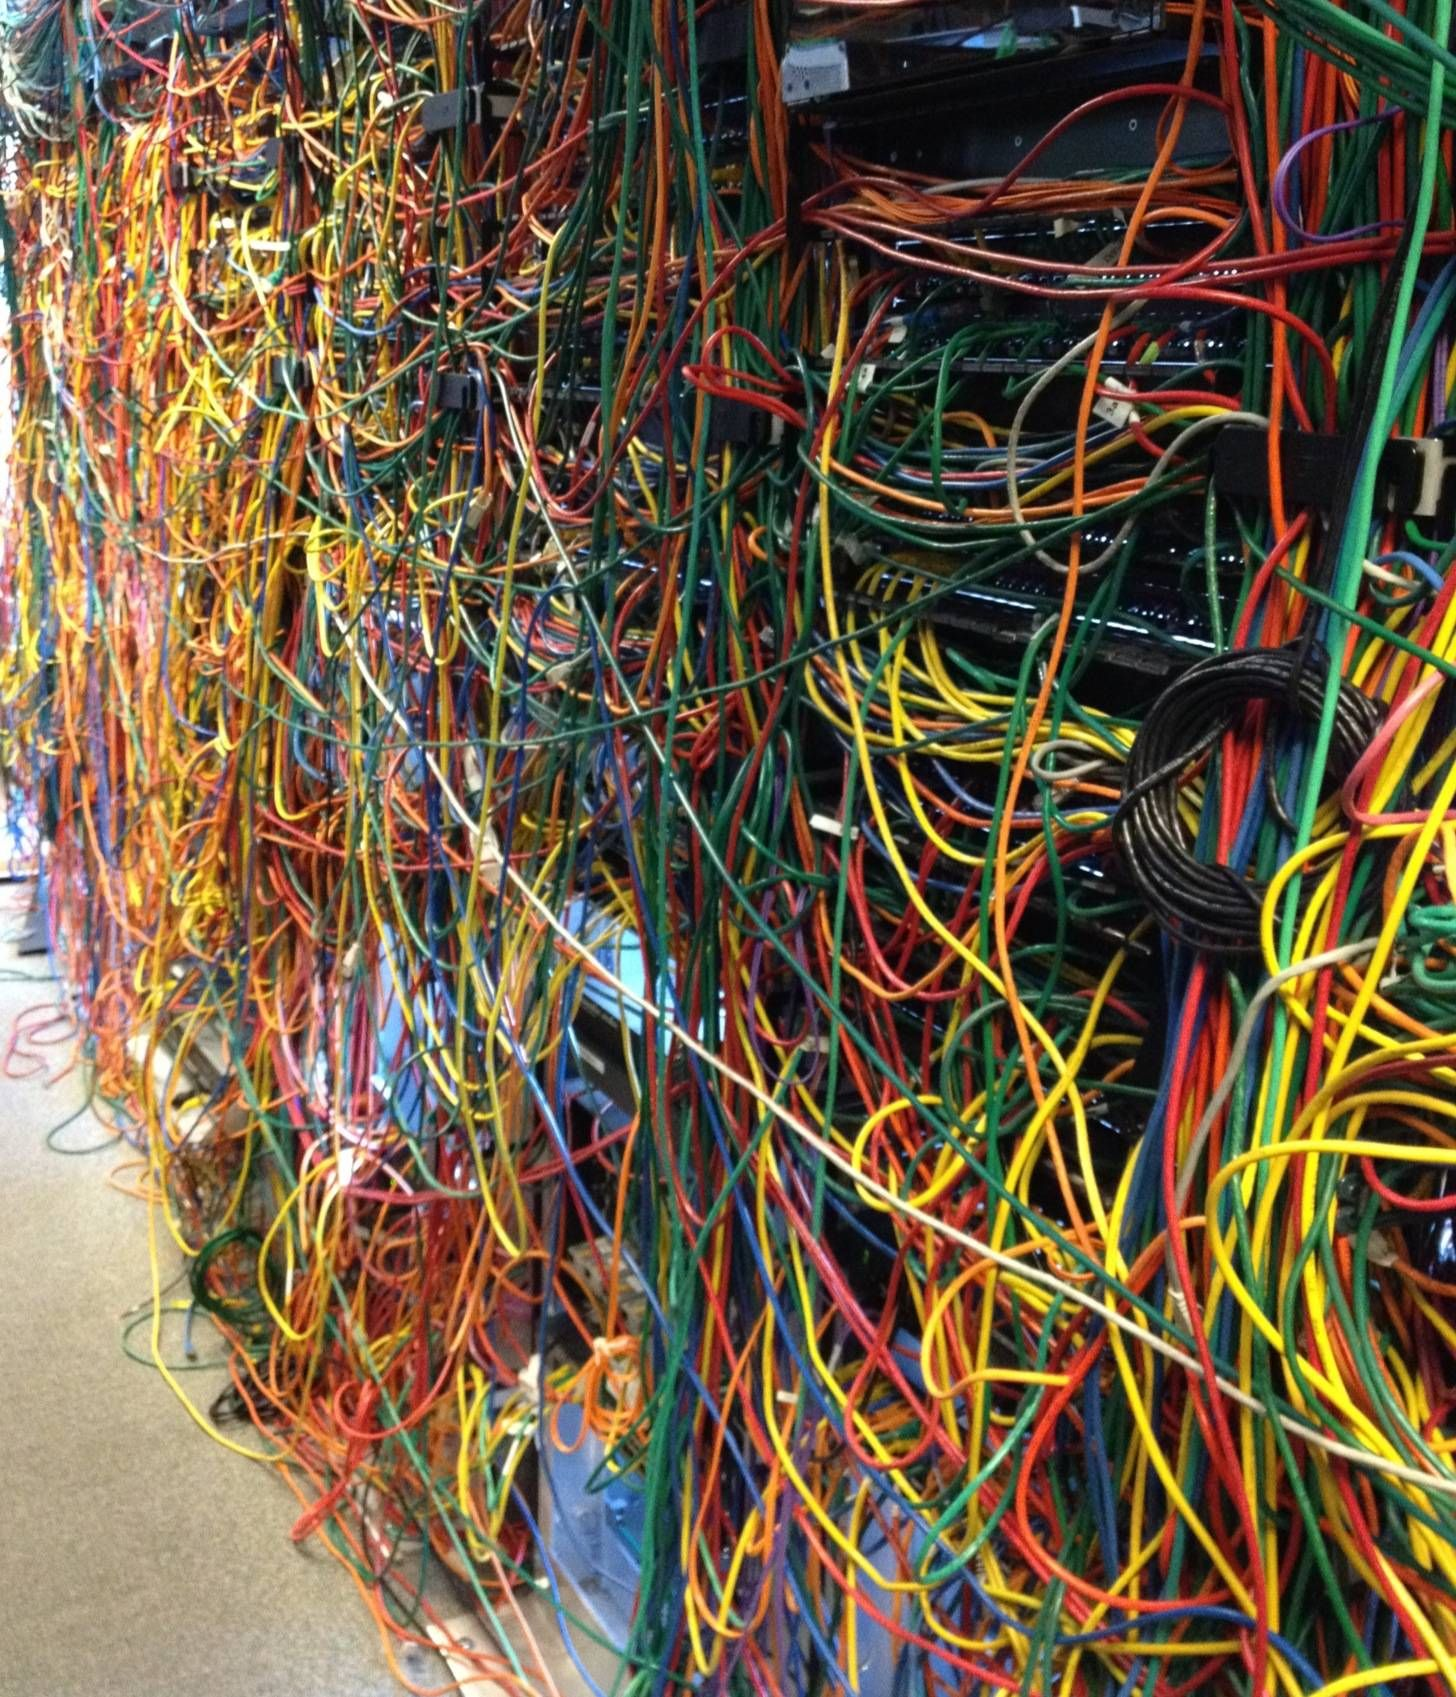 hight resolution of a network mess or cable art you decide